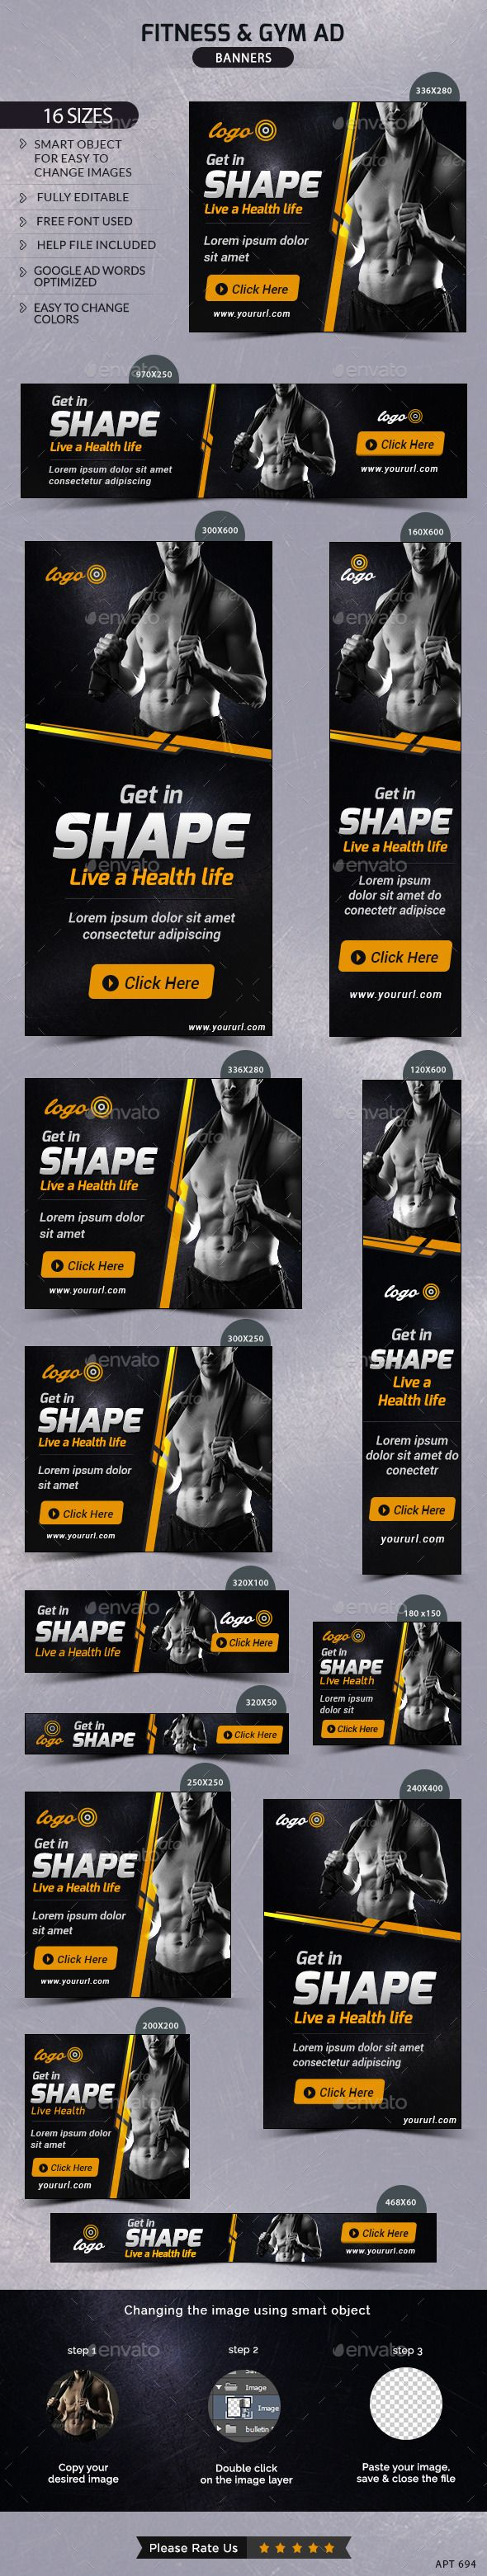 Fitness & Gym Banners Template #design Download: http://graphicriver.net/item/fitness-gym-banners/11849463?ref=ksioks